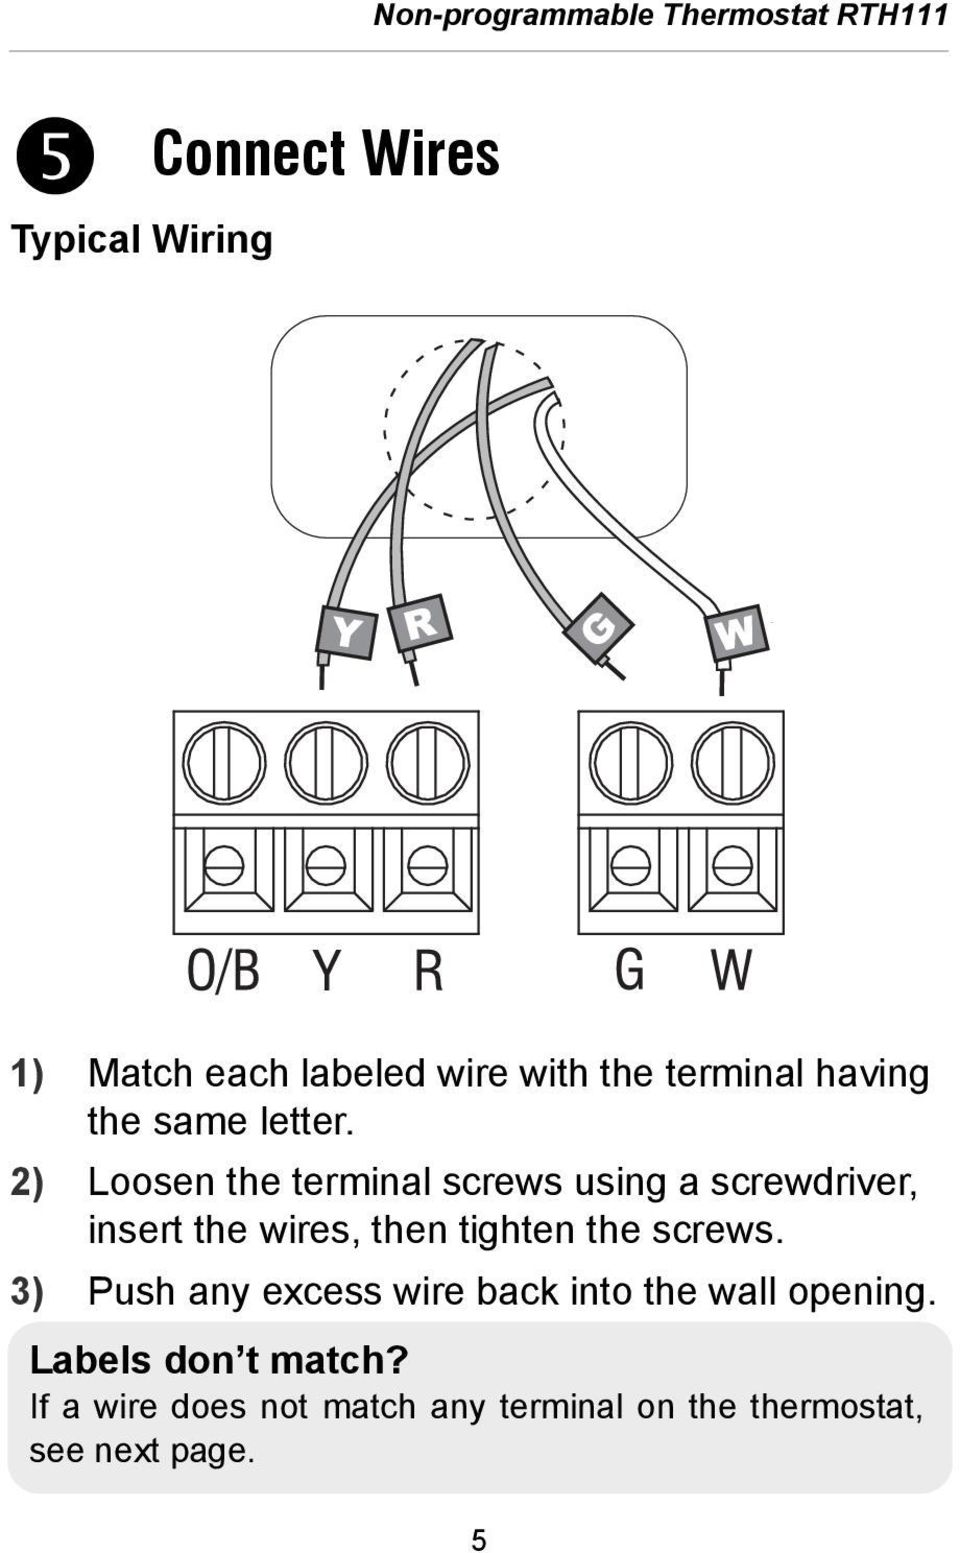 2) Loosen the terminal screws using a screwdriver, insert the wires, then tighten the screws.